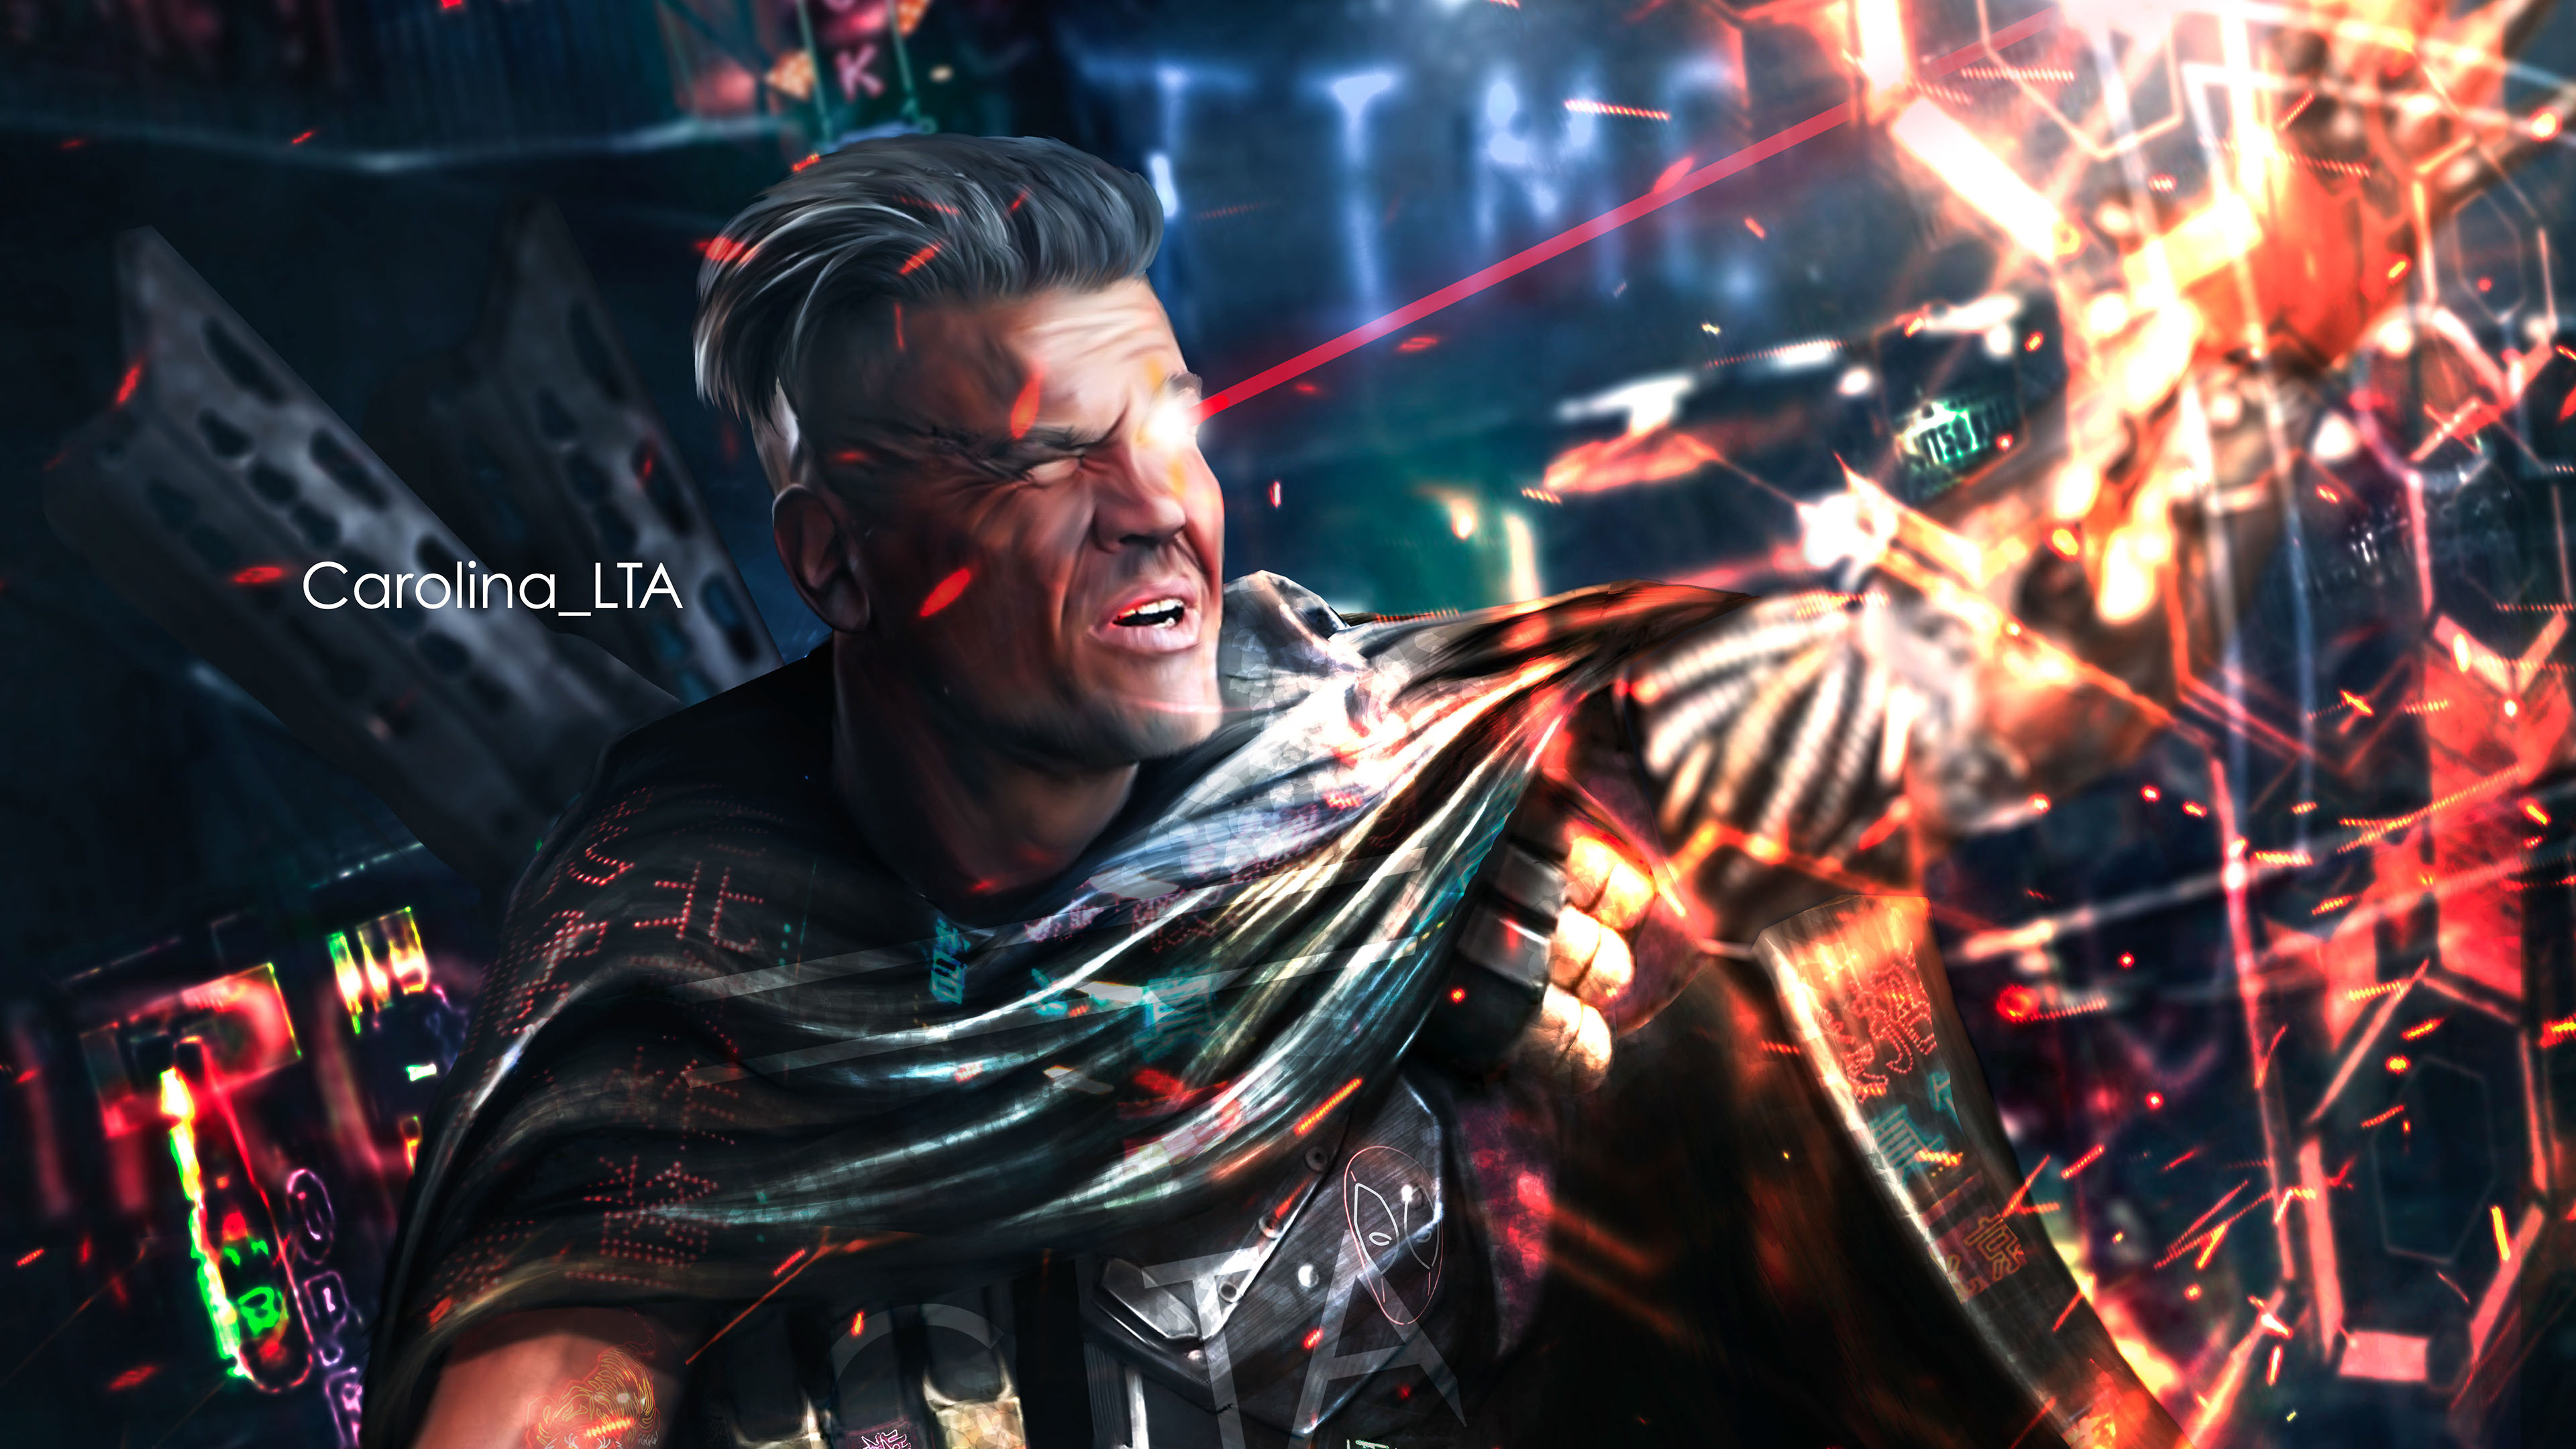 cable deadpool 2 art 4k 1555206400 - Cable Deadpool 2 Art 4k - superheroes wallpapers, hd-wallpapers, deadpool 2 wallpapers, cable wallpapers, behance wallpapers, artwork wallpapers, artist wallpapers, 4k-wallpapers